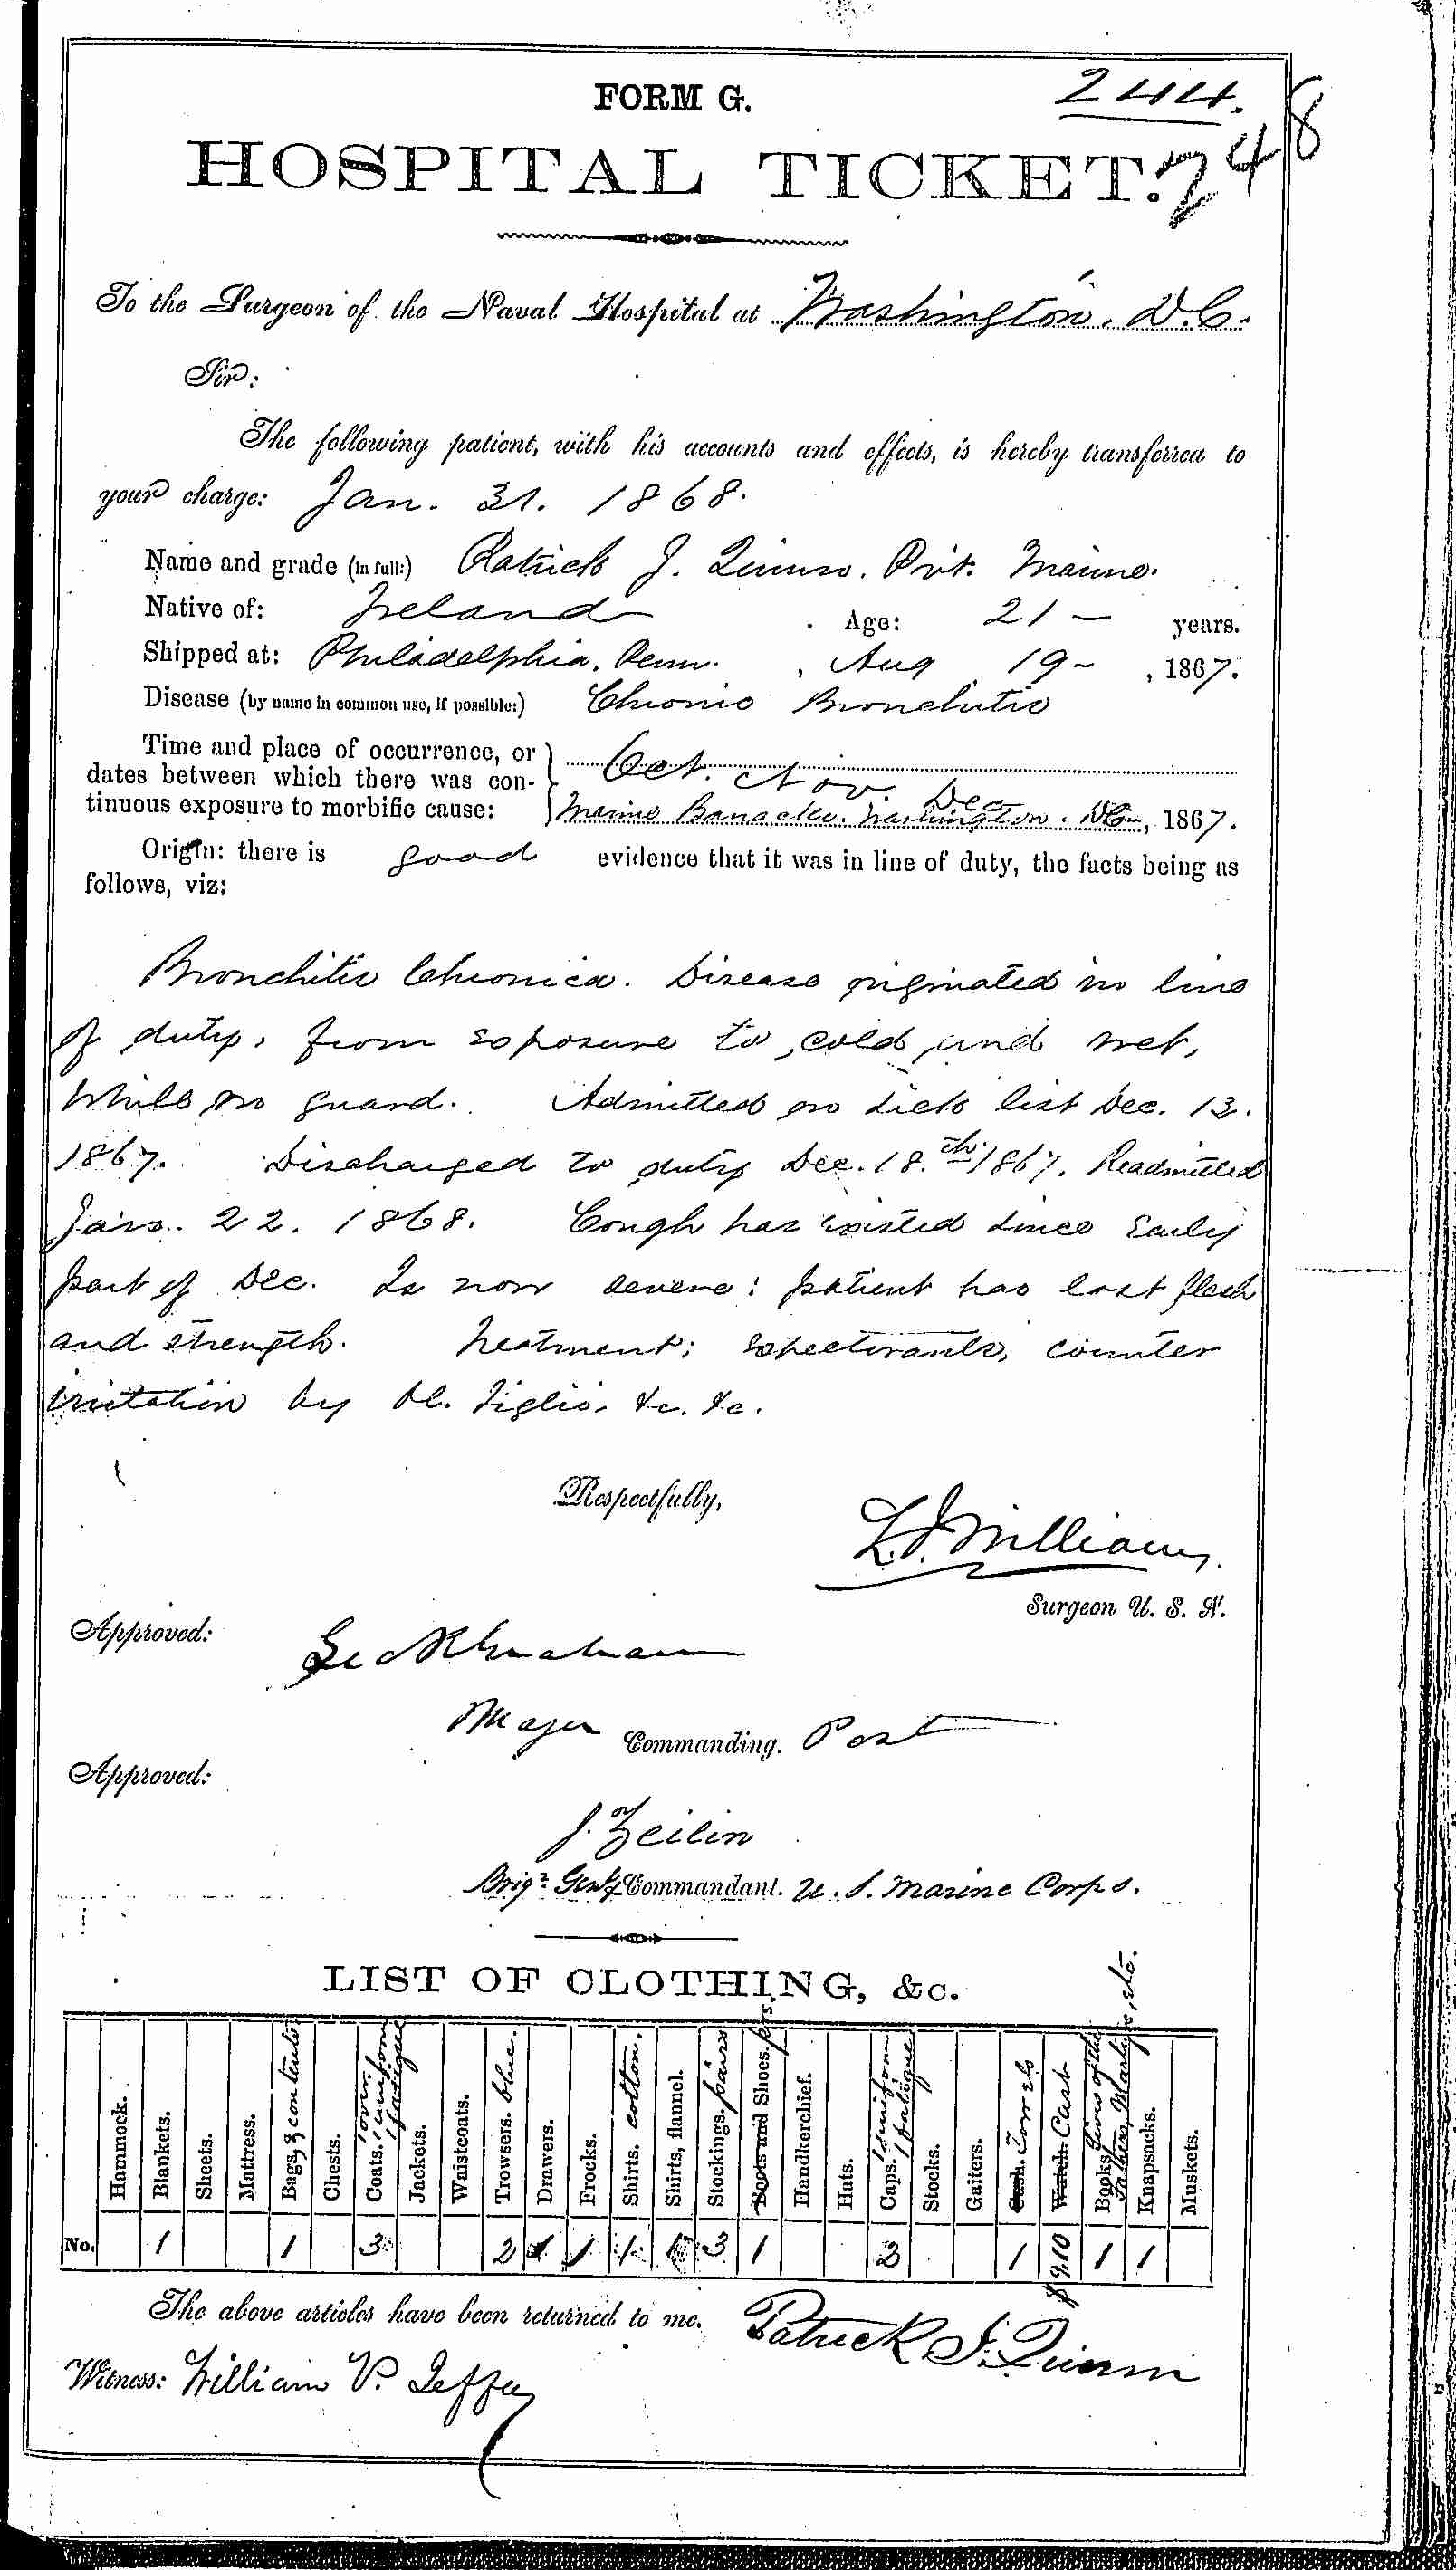 Entry for Patrick J. Quinn (page 1 of 2) in the log Hospital Tickets and Case Papers - Naval Hospital - Washington, D.C. - 1866-68